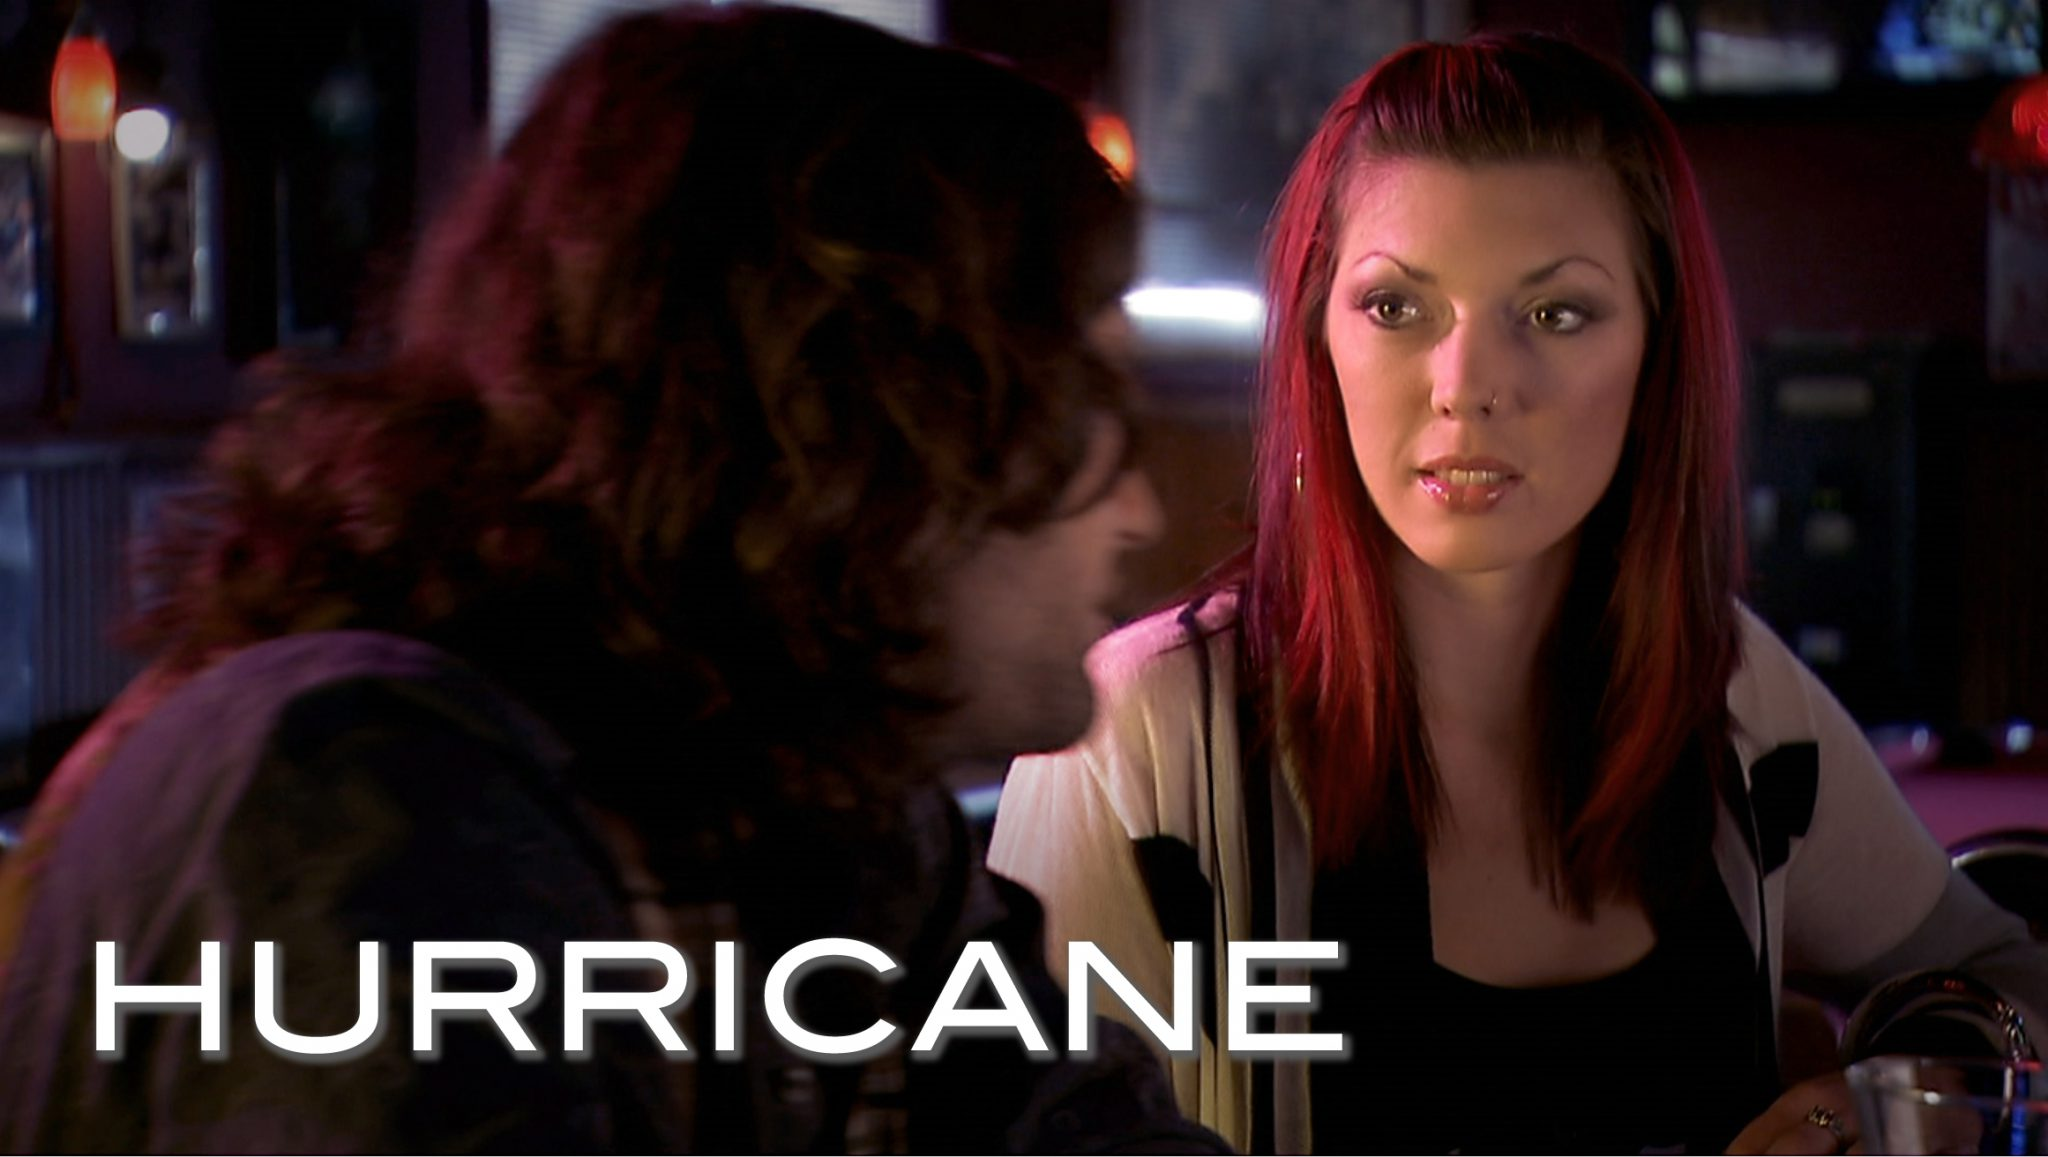 hurricane-reel-2-s1-2